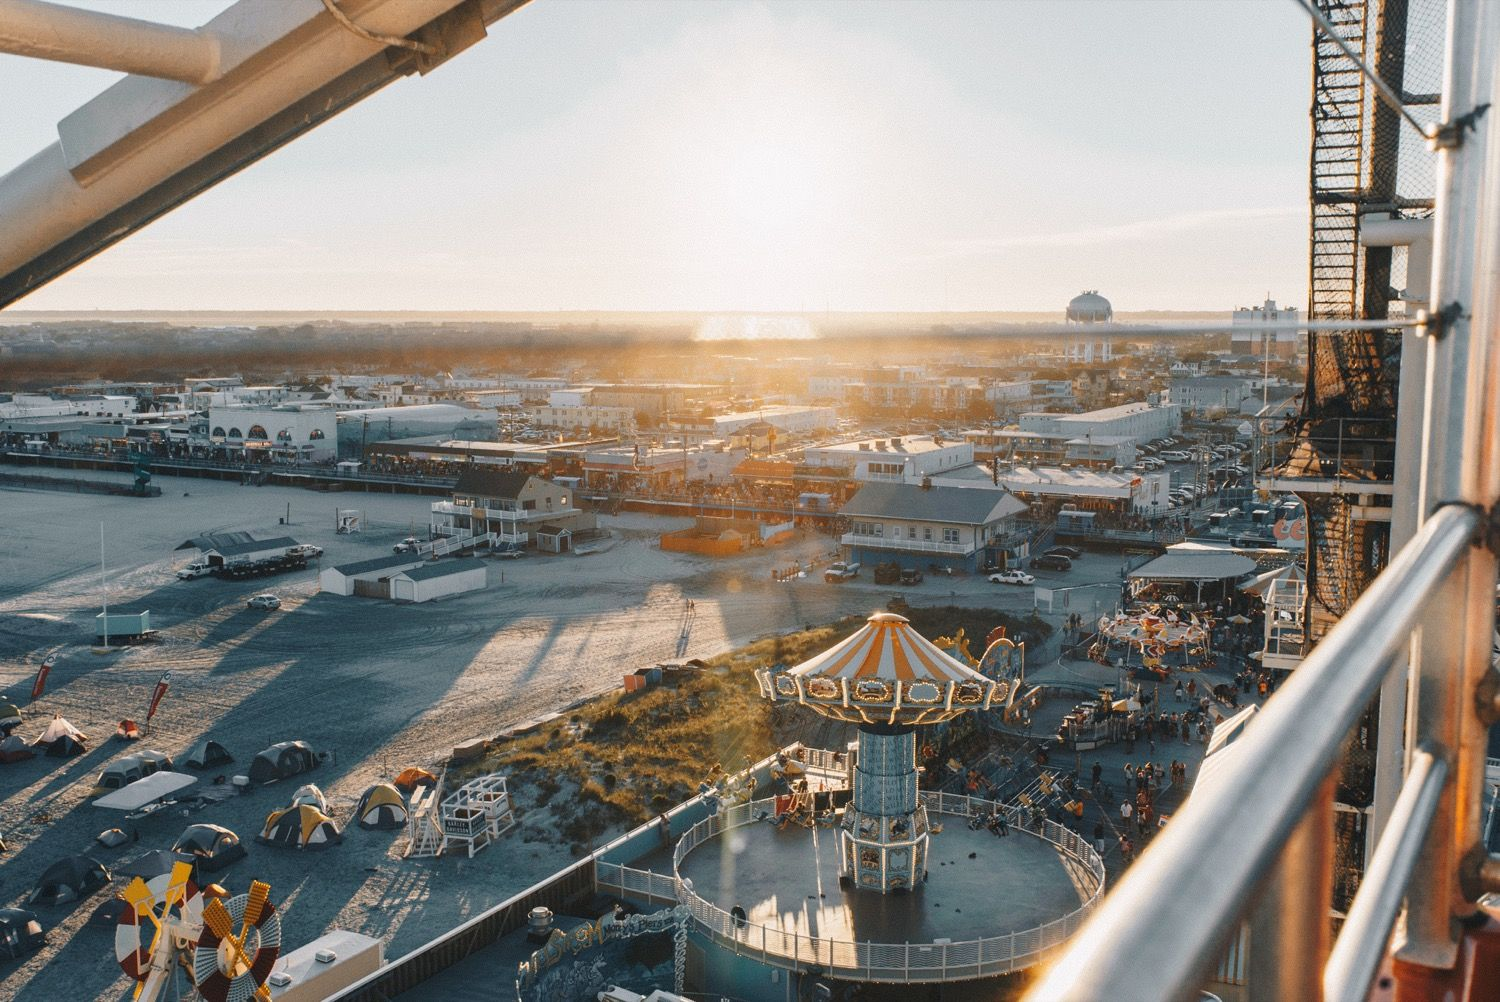 15 Best Things to Do in Wildwood, NJ